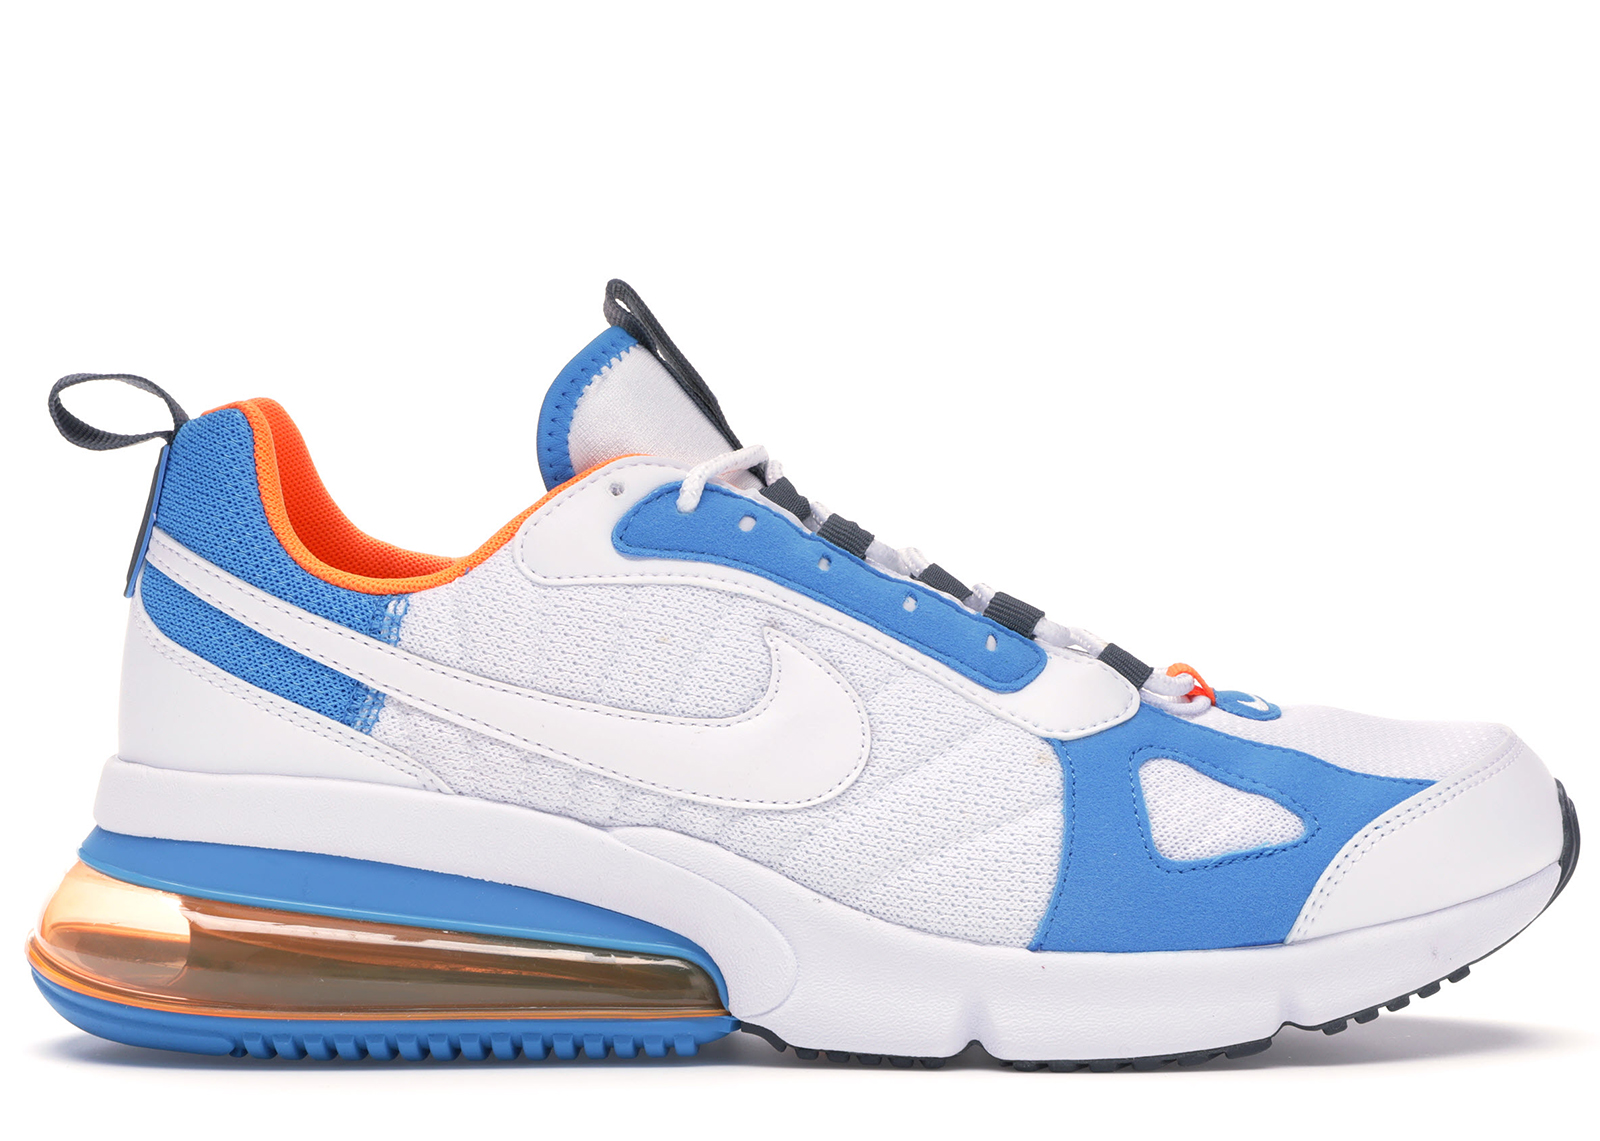 Nike Air Max 270 Futura White Total Orange Blue Heron Modesens